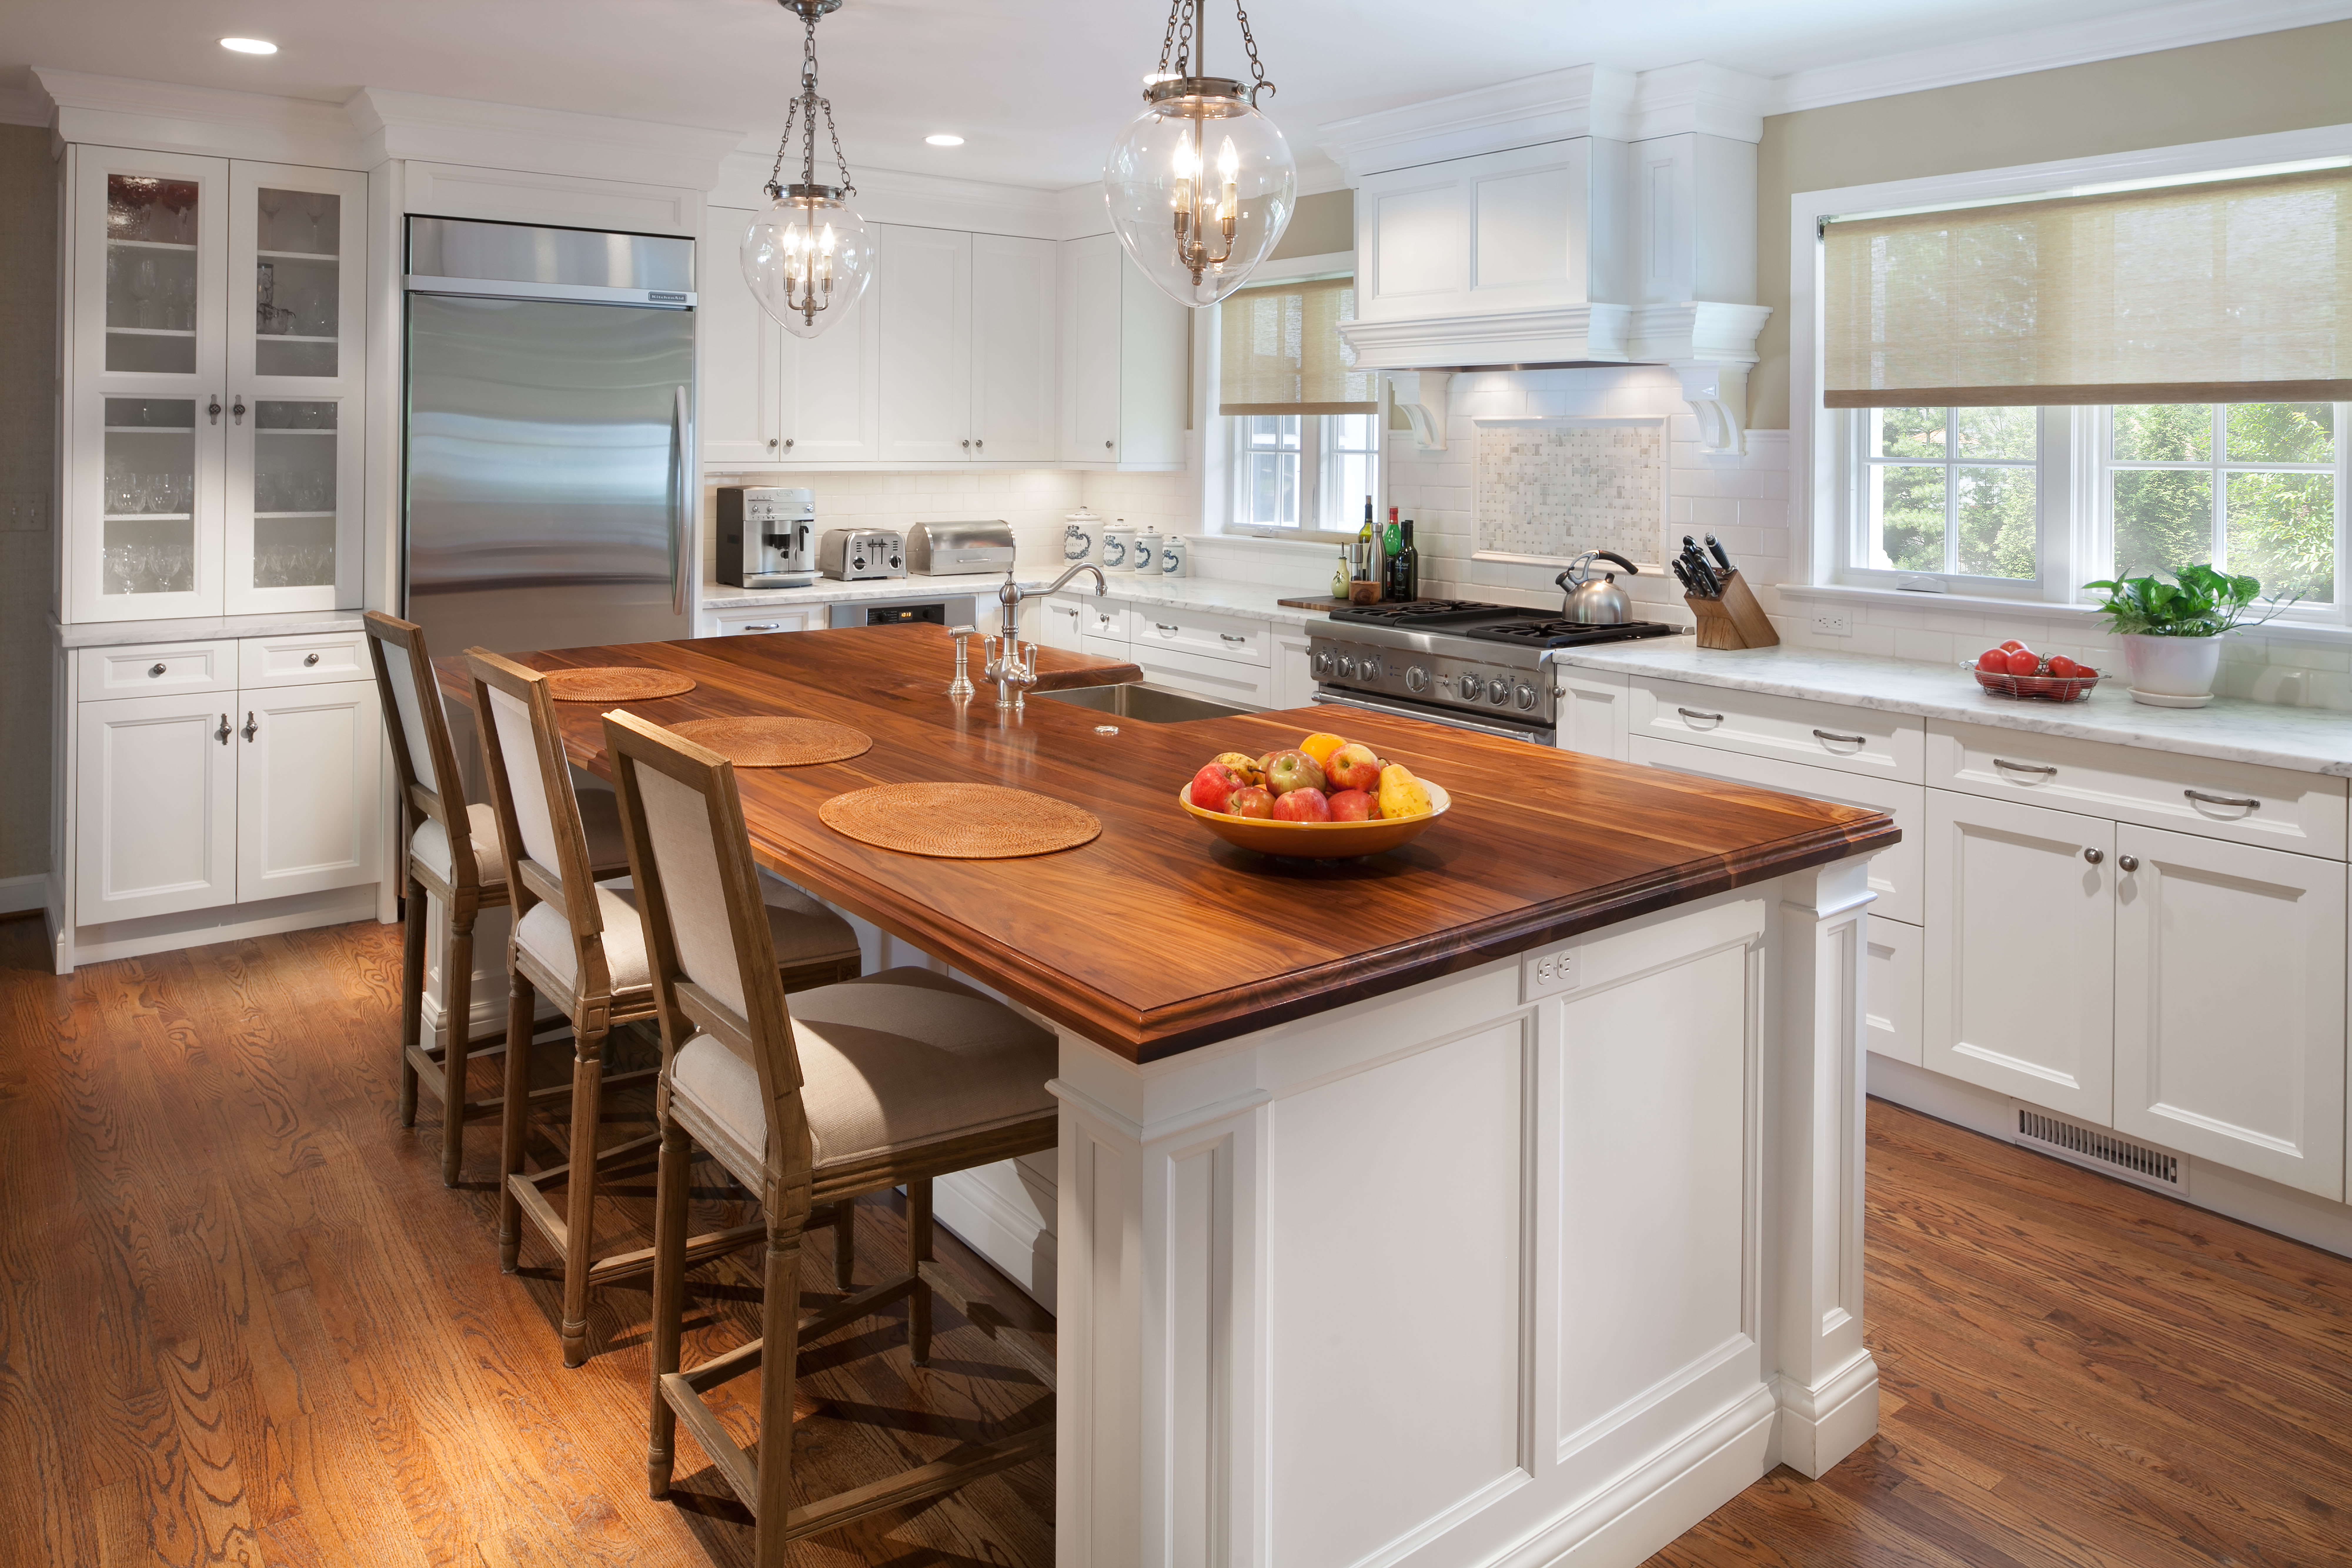 3 Tricks Kitchen Designers Use to Make a Small Kitchen Feel Larger